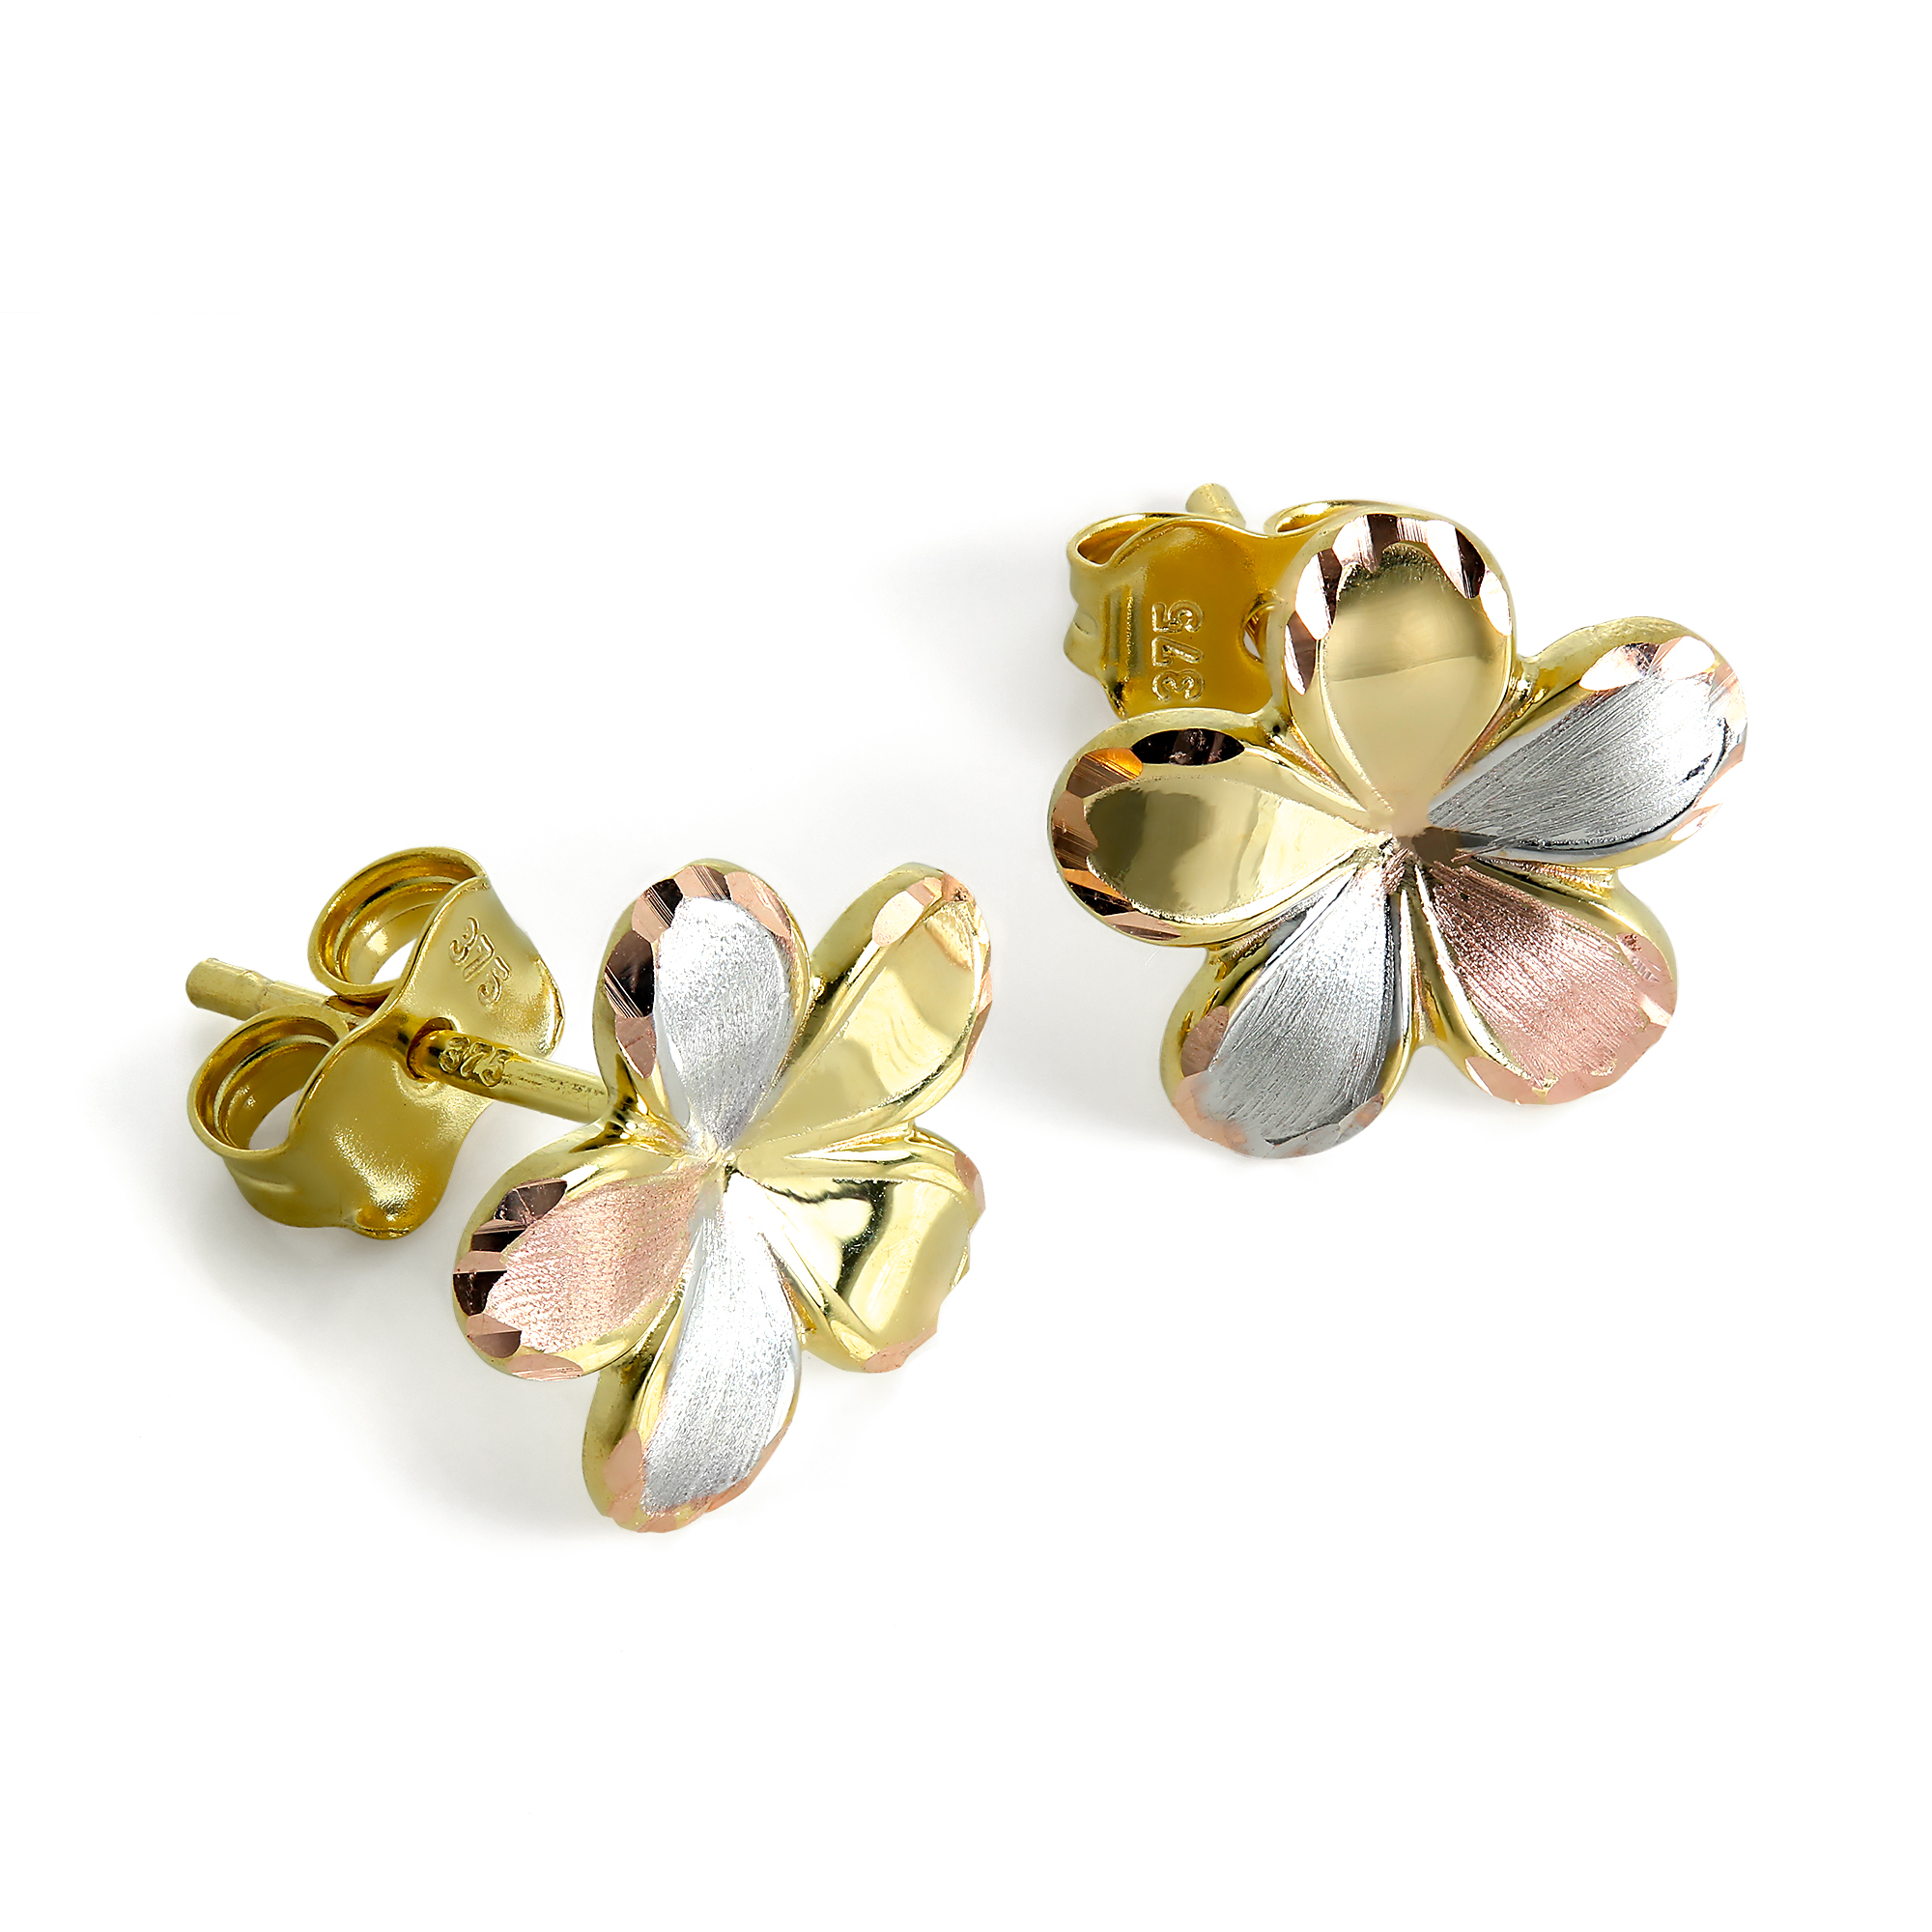 f54b182f9 Details about 9ct Yellow Rose & White Gold Flower Stud Earrings 375 Mixed Studs  Flowers